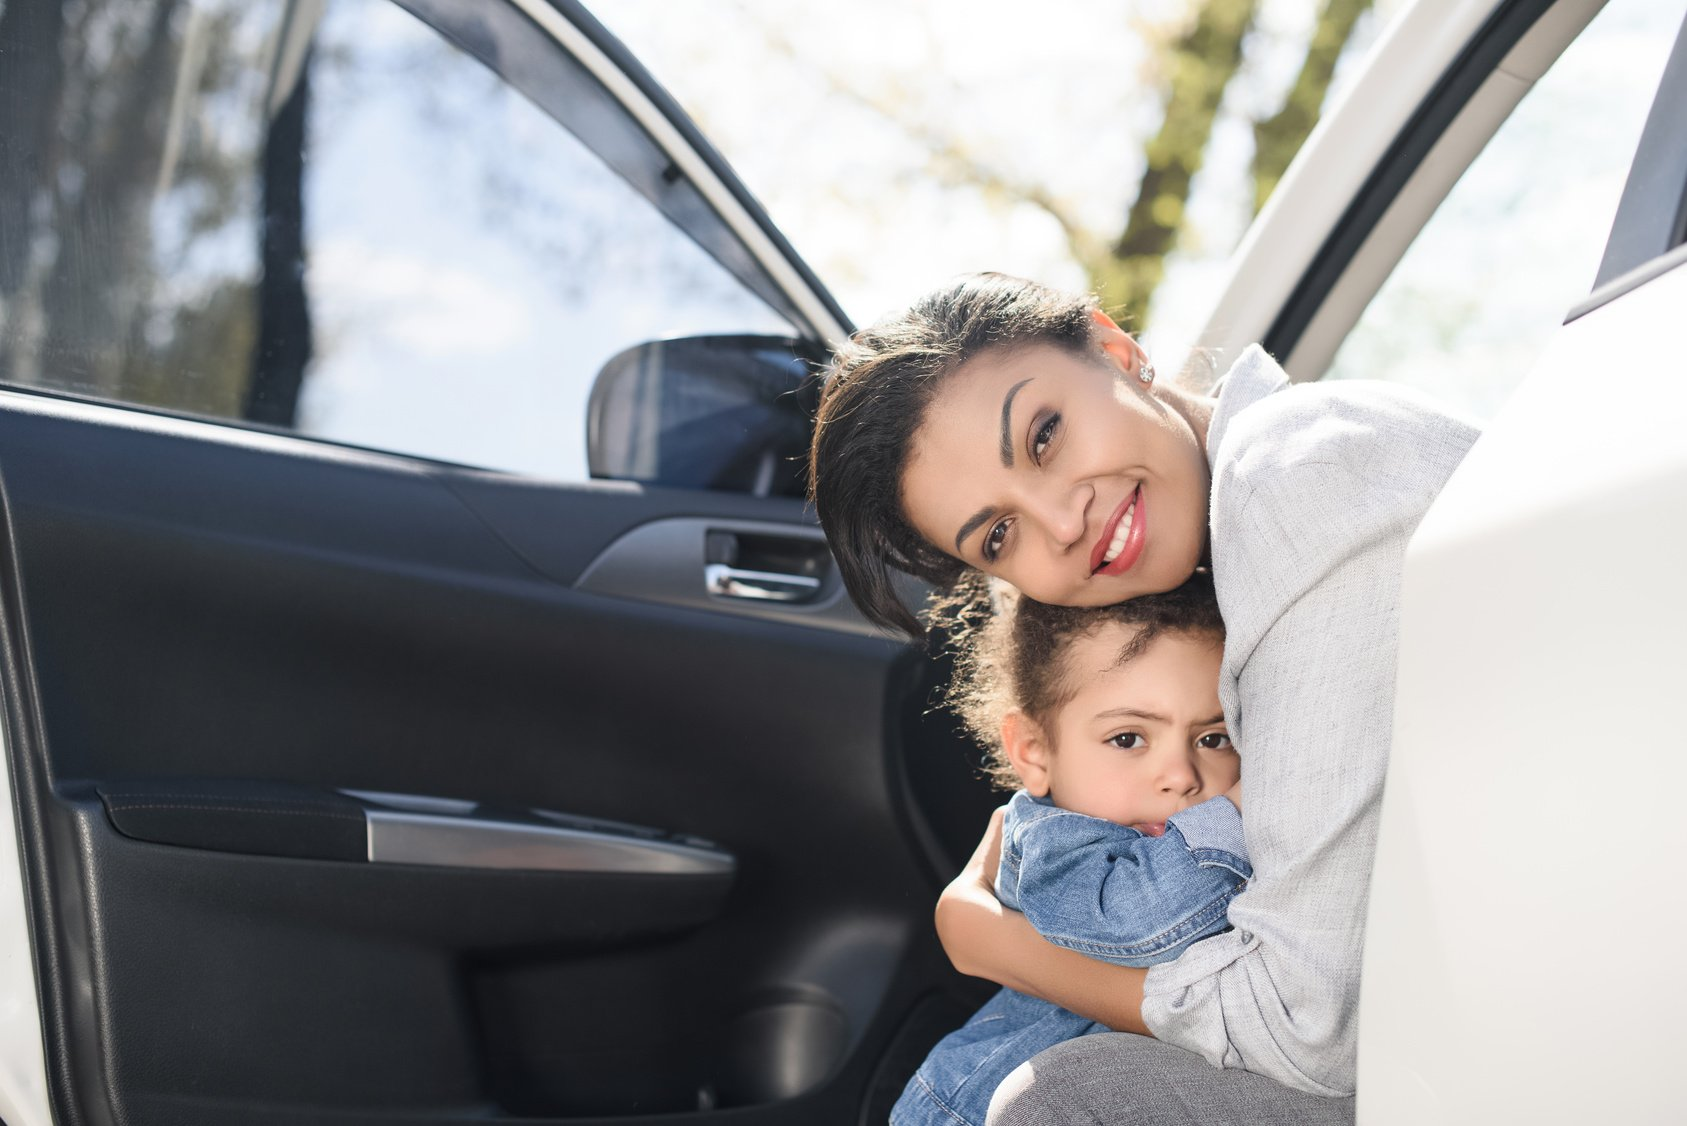 mother helped with donated car